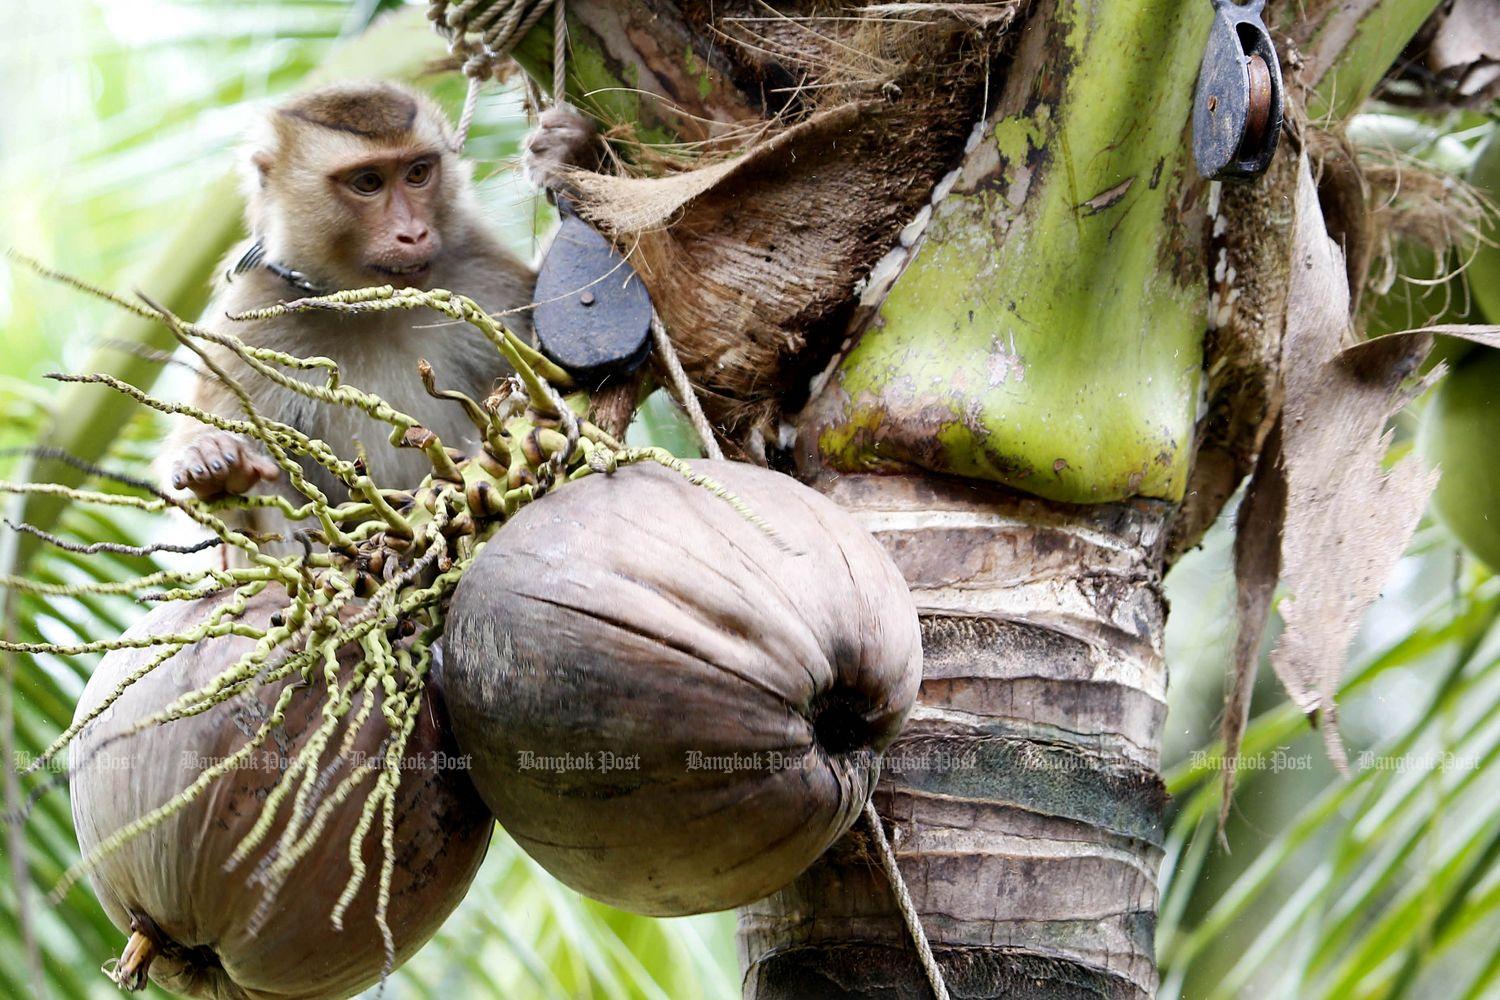 A monkey picks coconuts at the Khlong Noi Monkey Training School in Muang district, Surat Thani province, in October last year. (Photo by Pattarapong Chatpattarasill)